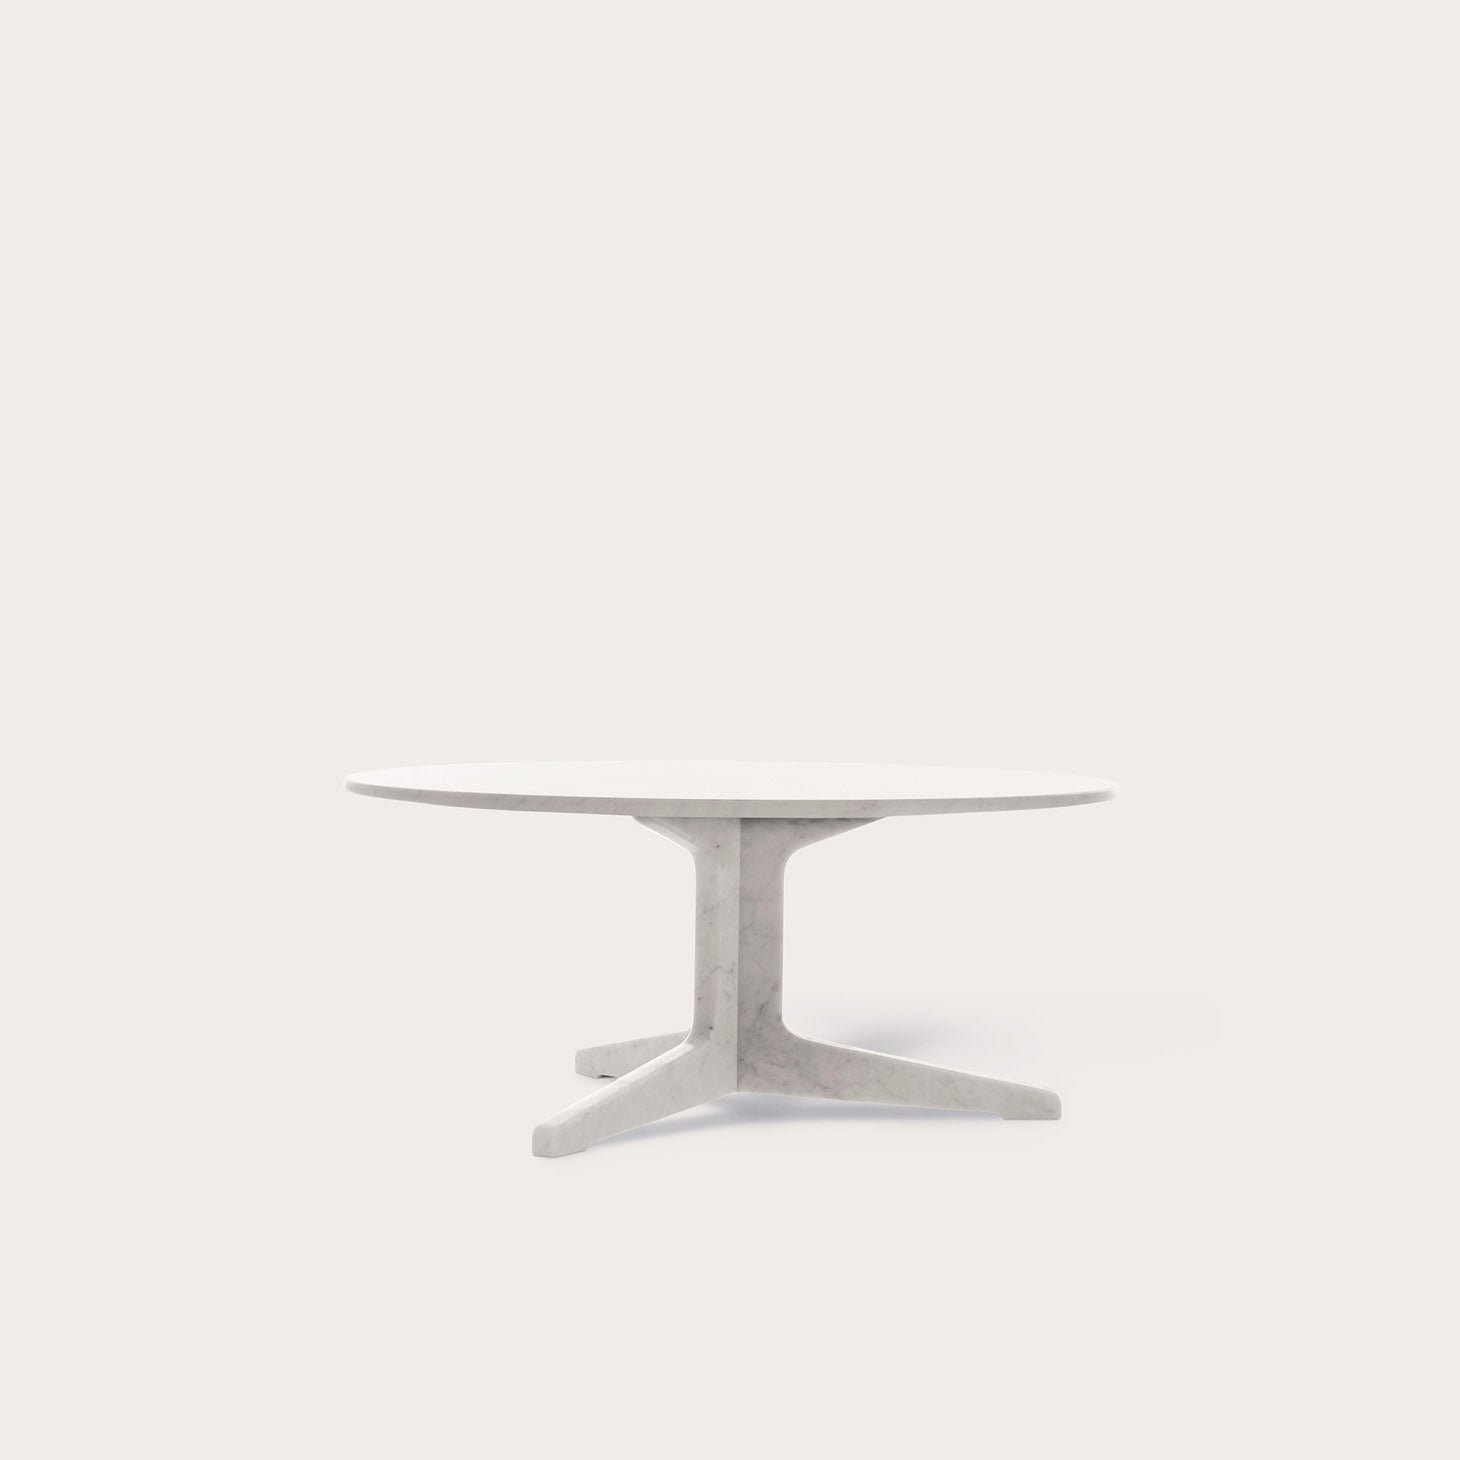 Jeeves 80 Tables Nendo Designer Furniture Sku: 625-230-10013